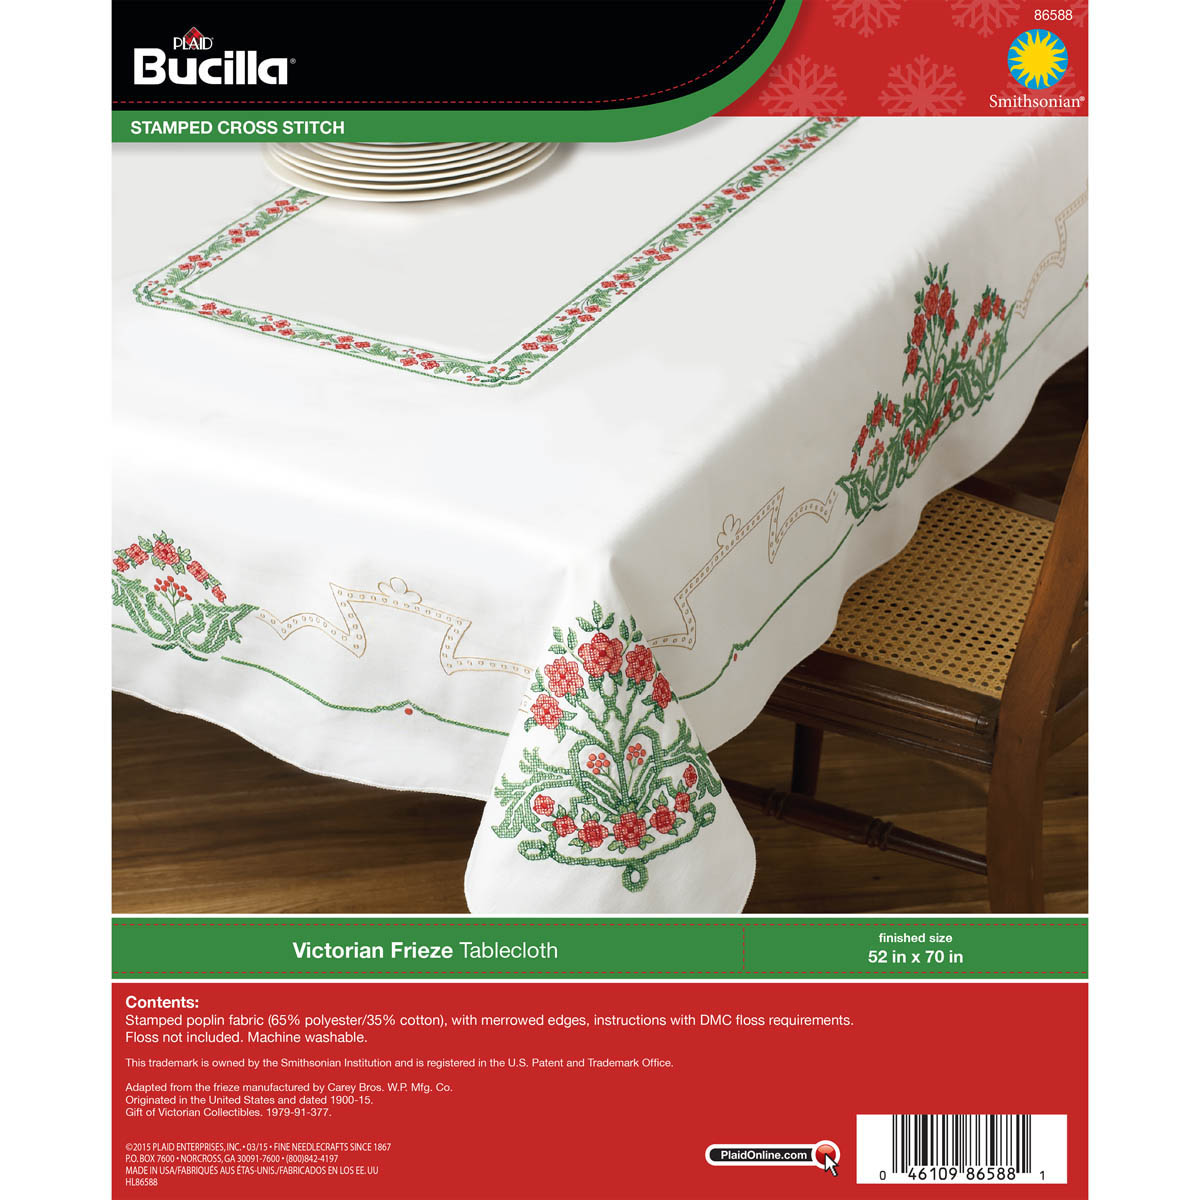 Bucilla ® Seasonal - Stamped Cross Stitch - Smithsonian ® - Table Ensembles - Victorian Frieze - Tab